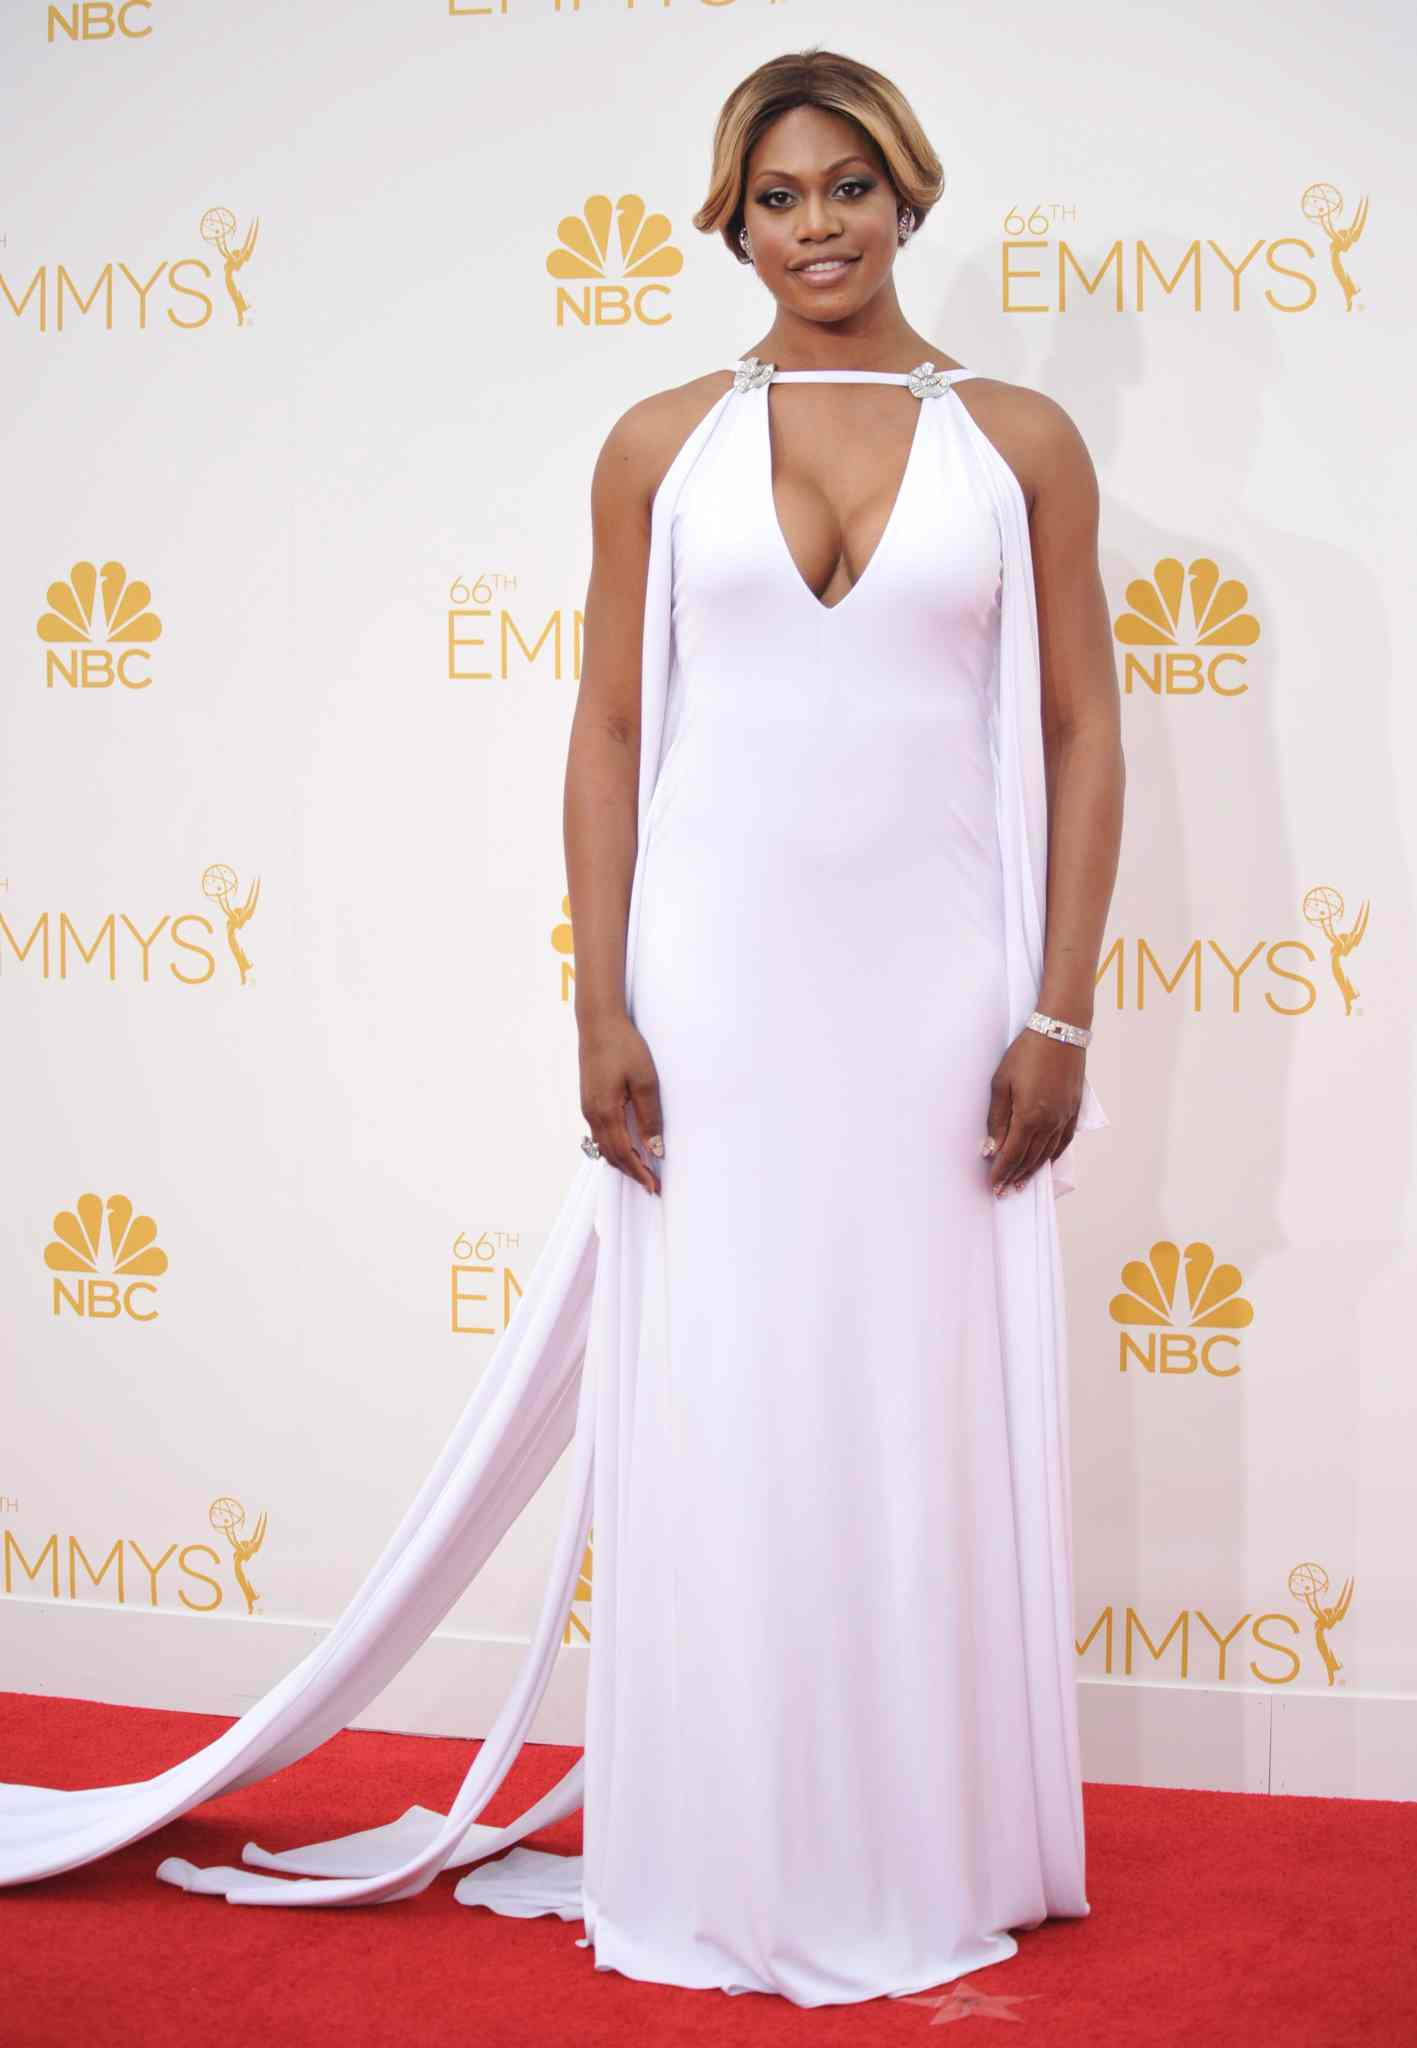 Laverne Cox (Orange Is the New Black) arrives at the 66th Annual Primetime Emmy Awards at the Nokia Theatre L.A. Live Monday.